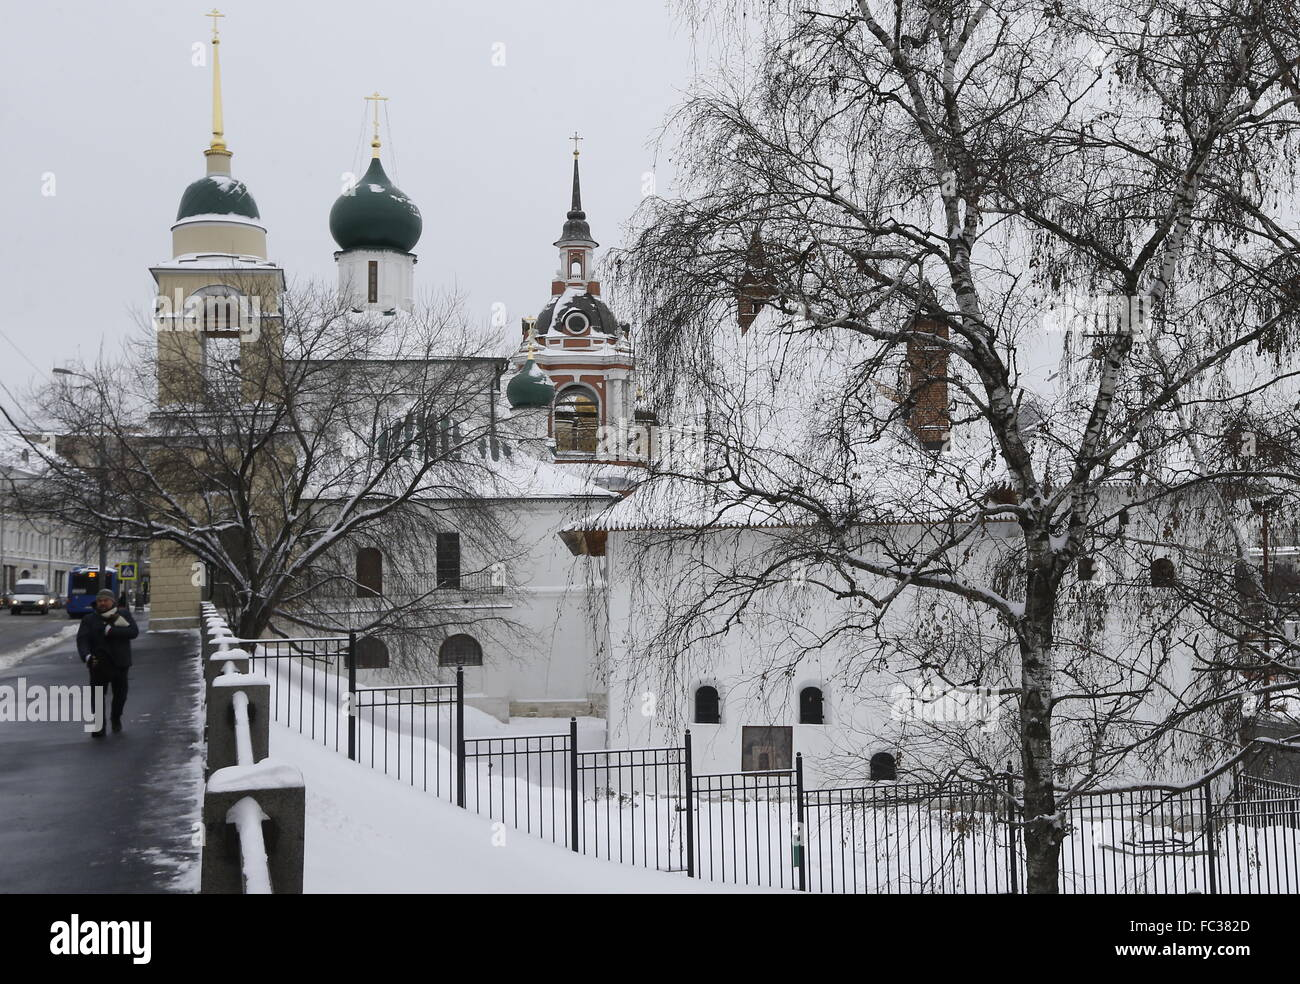 Moscow, Russia. 20th Jan, 2016. An outside view of the Old English Court, which used to house an English embassy - Stock Image